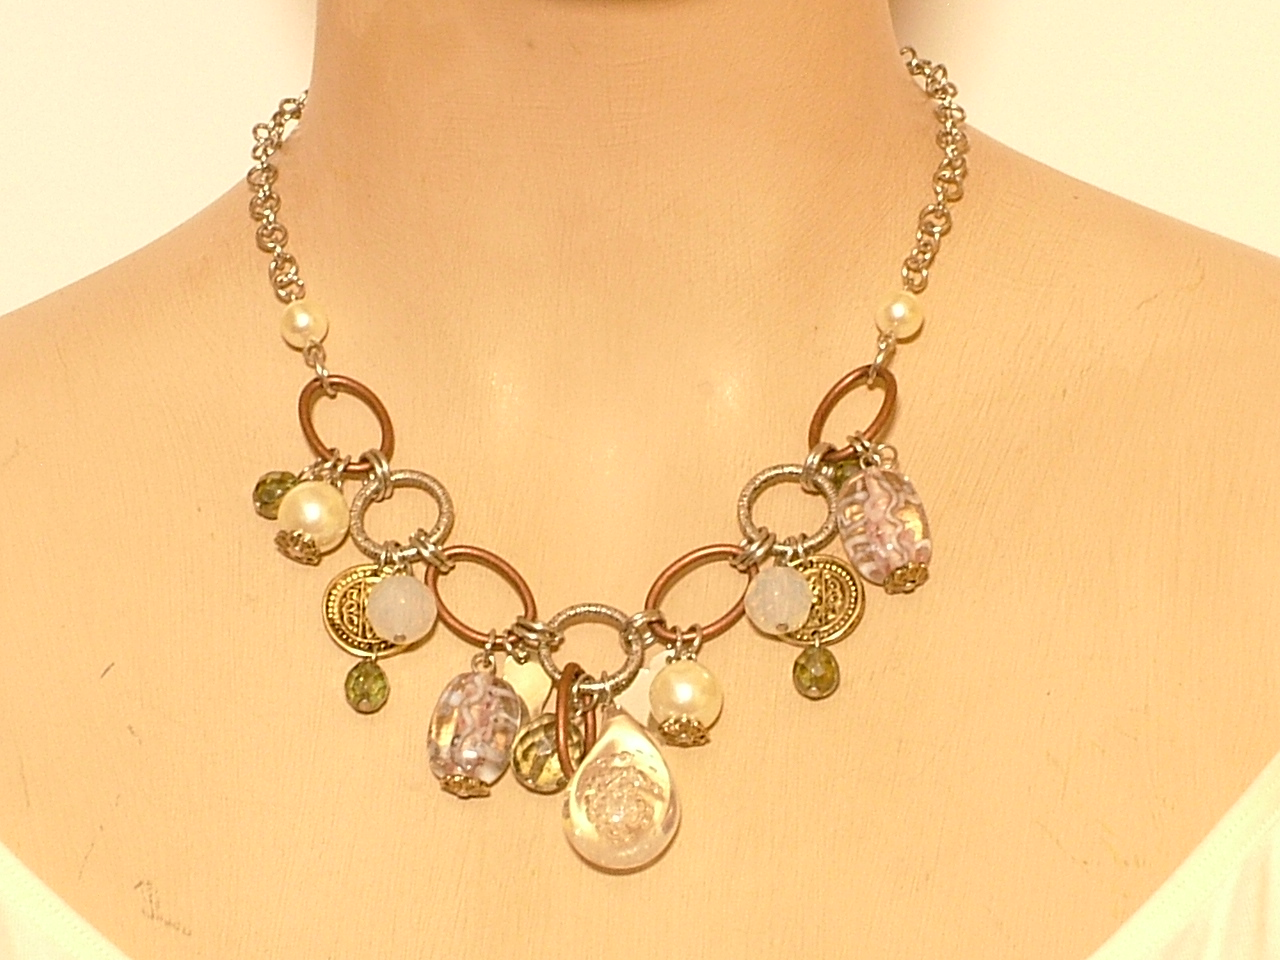 Handmade Necklace has real appeal